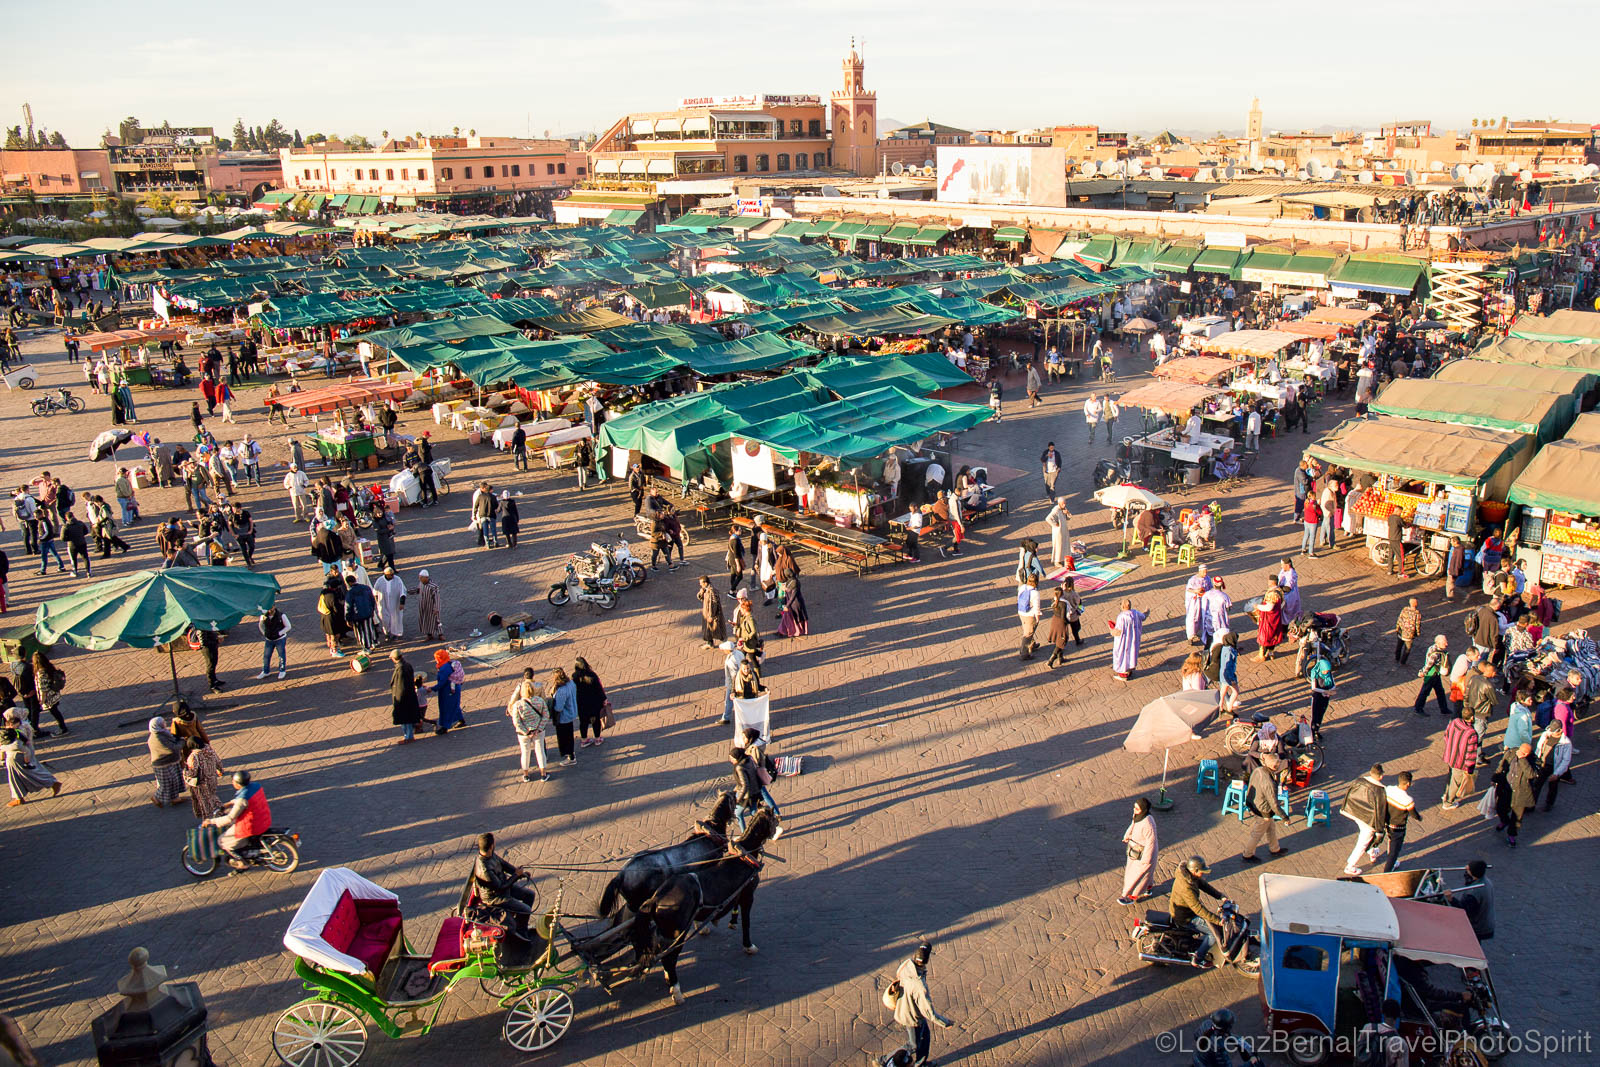 The Djemaa el fna square of Matrrakech at sunset